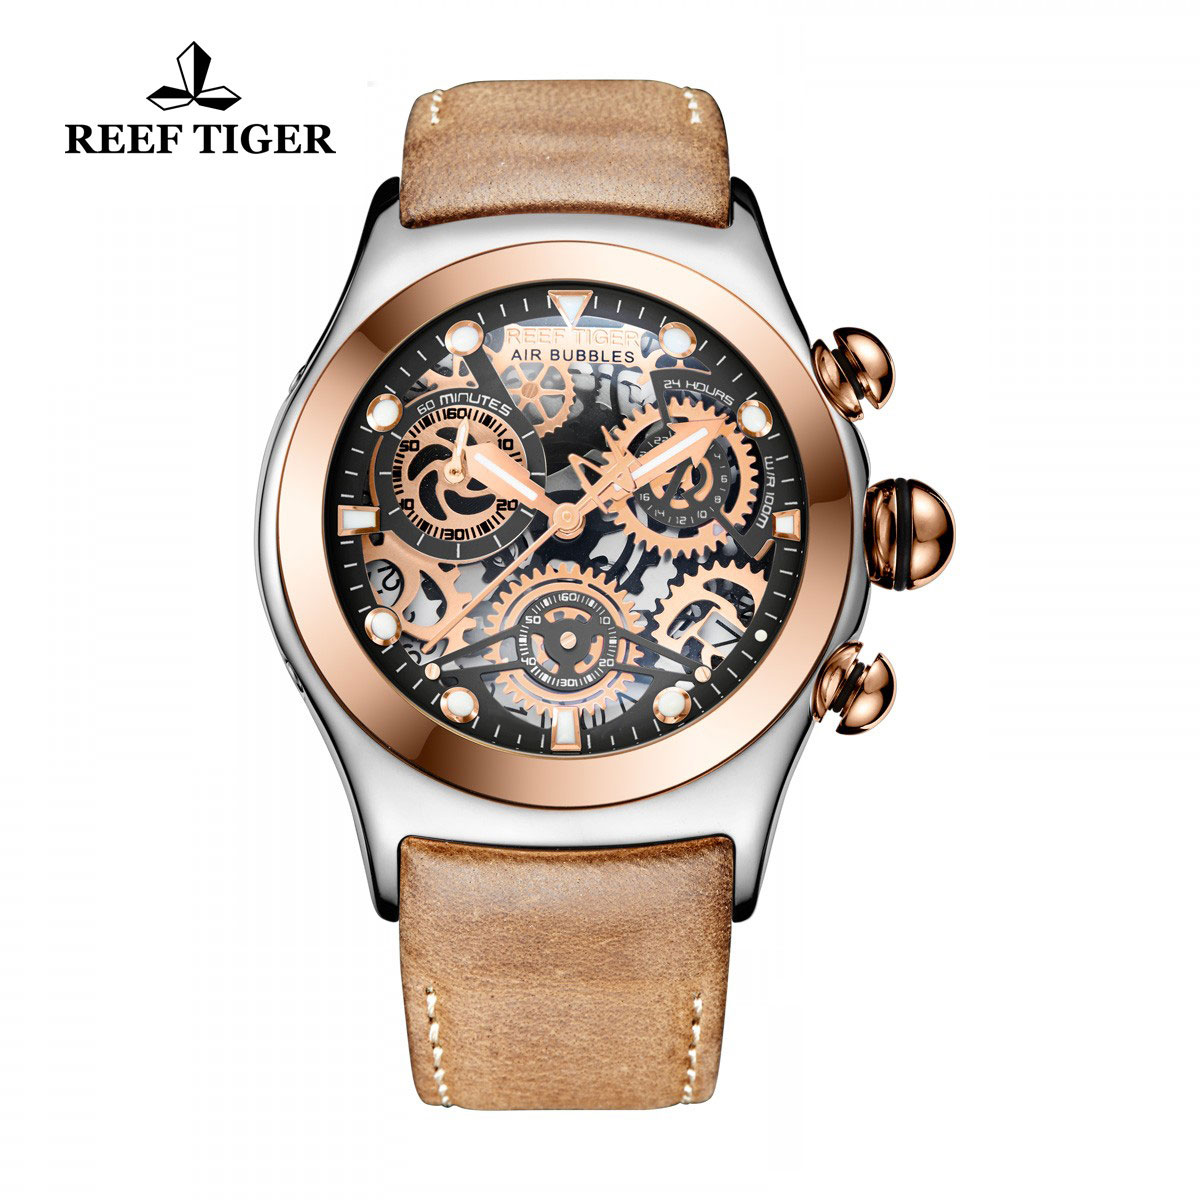 Reef Tiger Big Bang Sport Casual Watches Chronograph Watch Skeleton Dial Two Tone Case RGA792-TBB